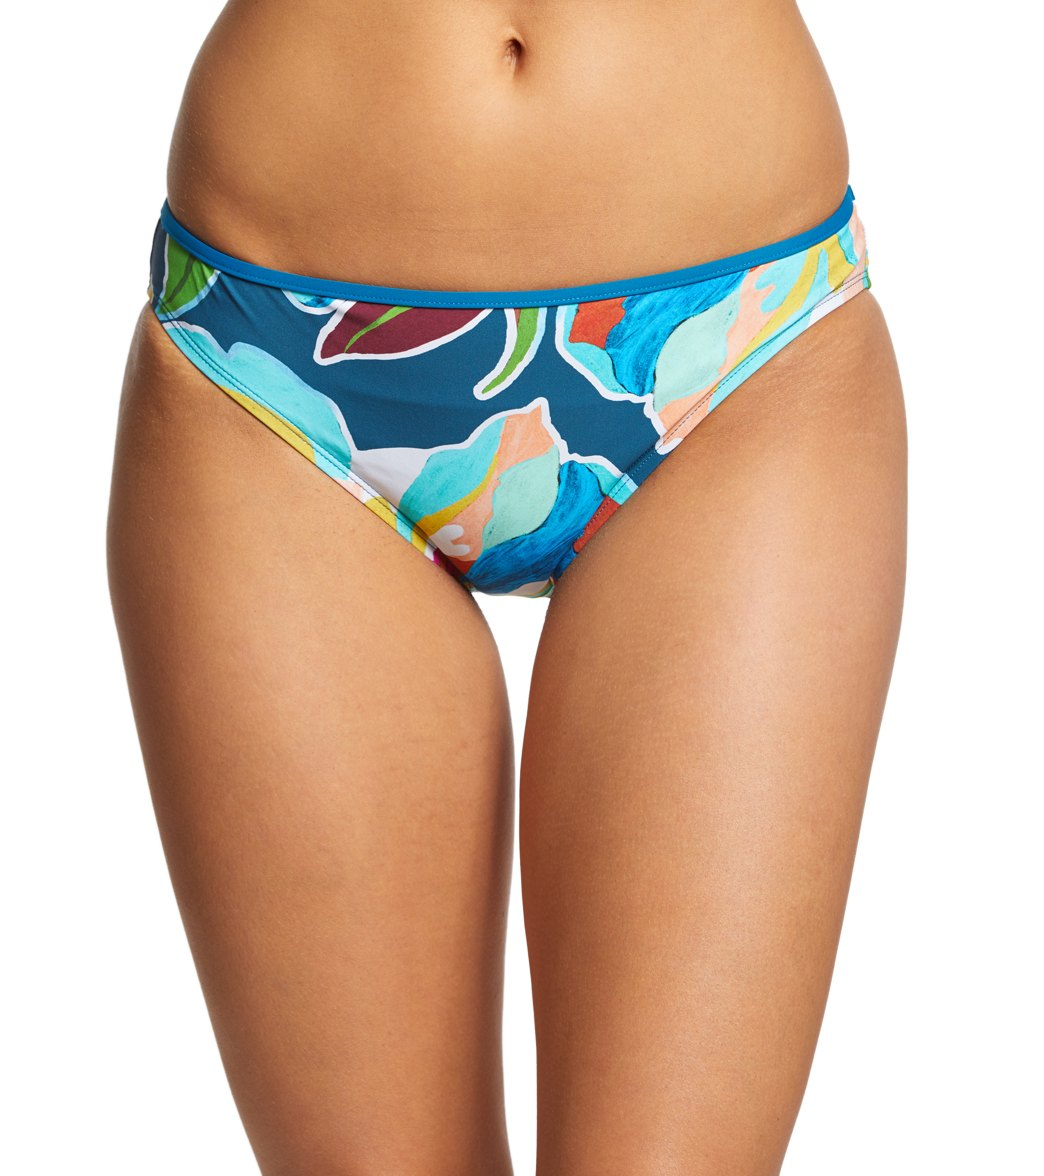 3c697a80fd9 La Blanca Go With The Flo-ral Hipster Bikini Bottom at SwimOutlet.com -  Free Shipping